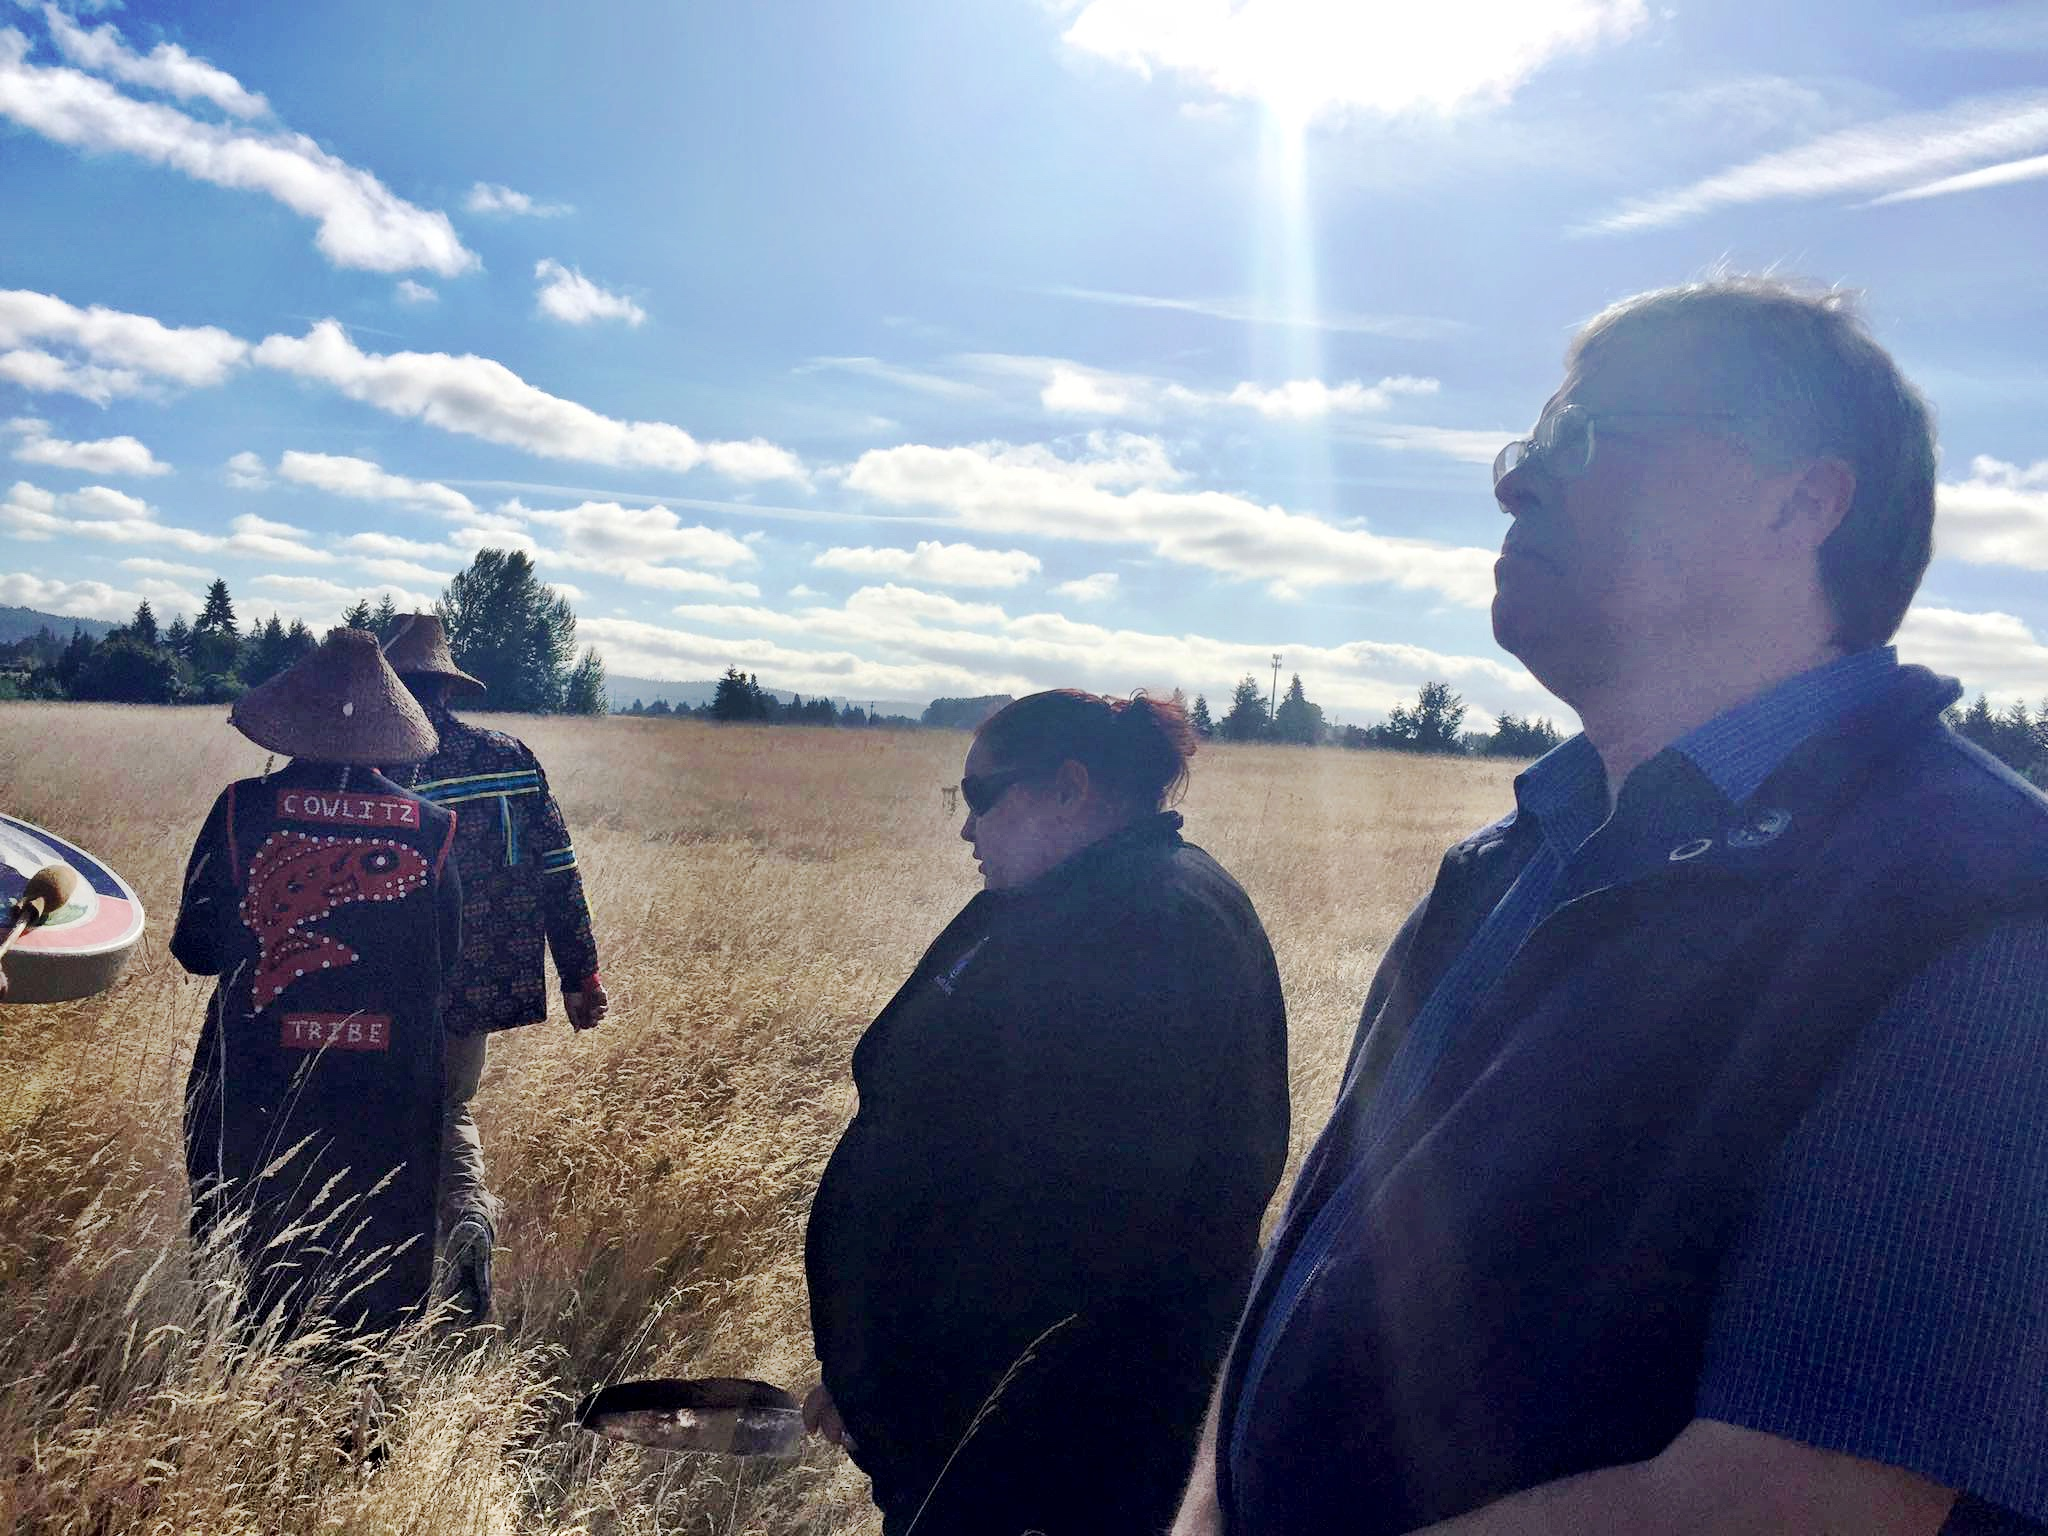 Cowlitz Tribe opposes coal export terminal on aboriginal lands